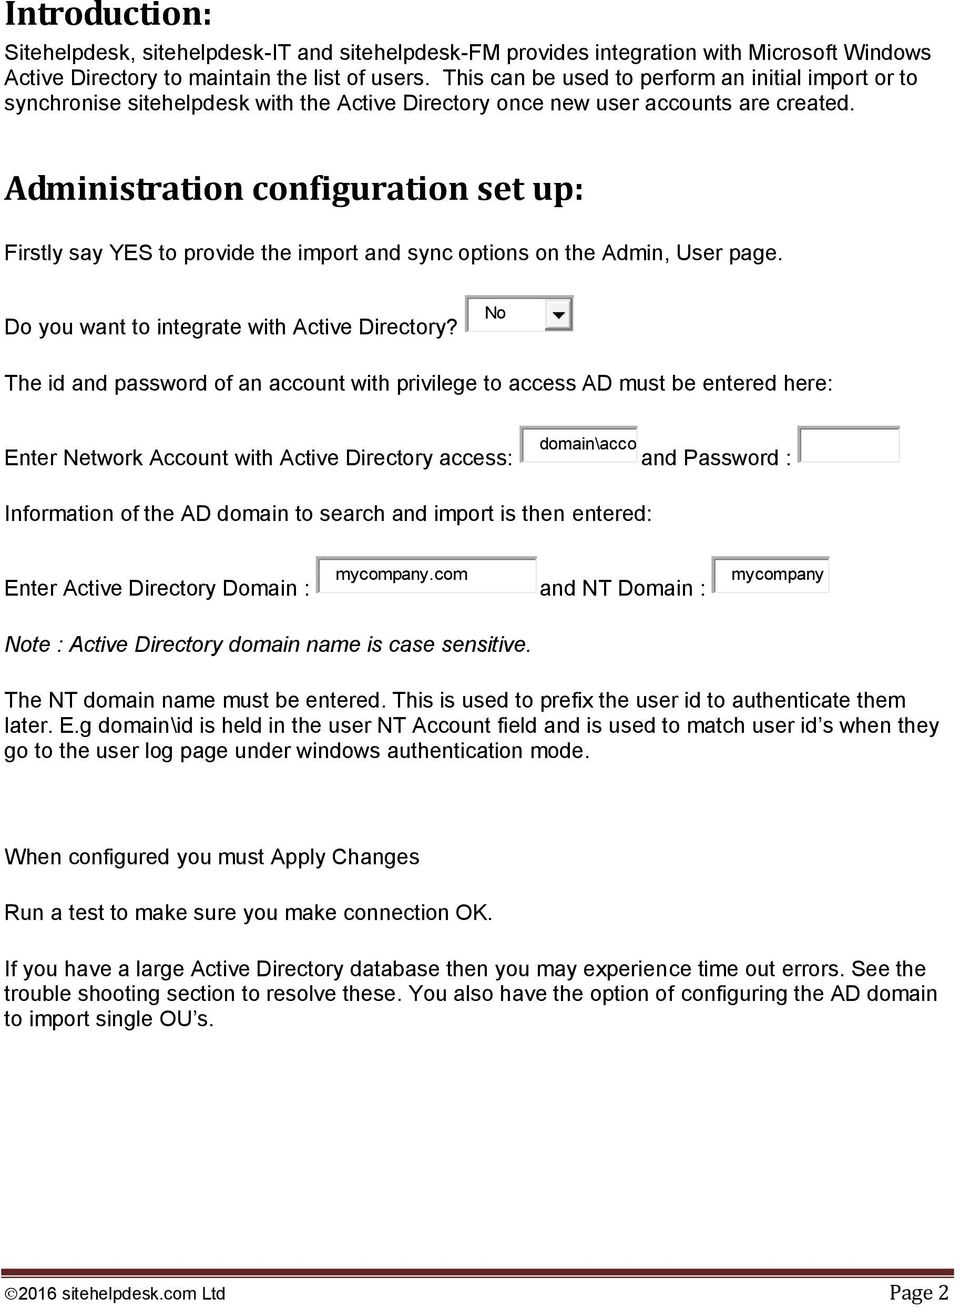 Administration configuration set up: Firstly say YES to provide the import and sync options on the Admin, User page. Do you want to integrate with Active Directory?